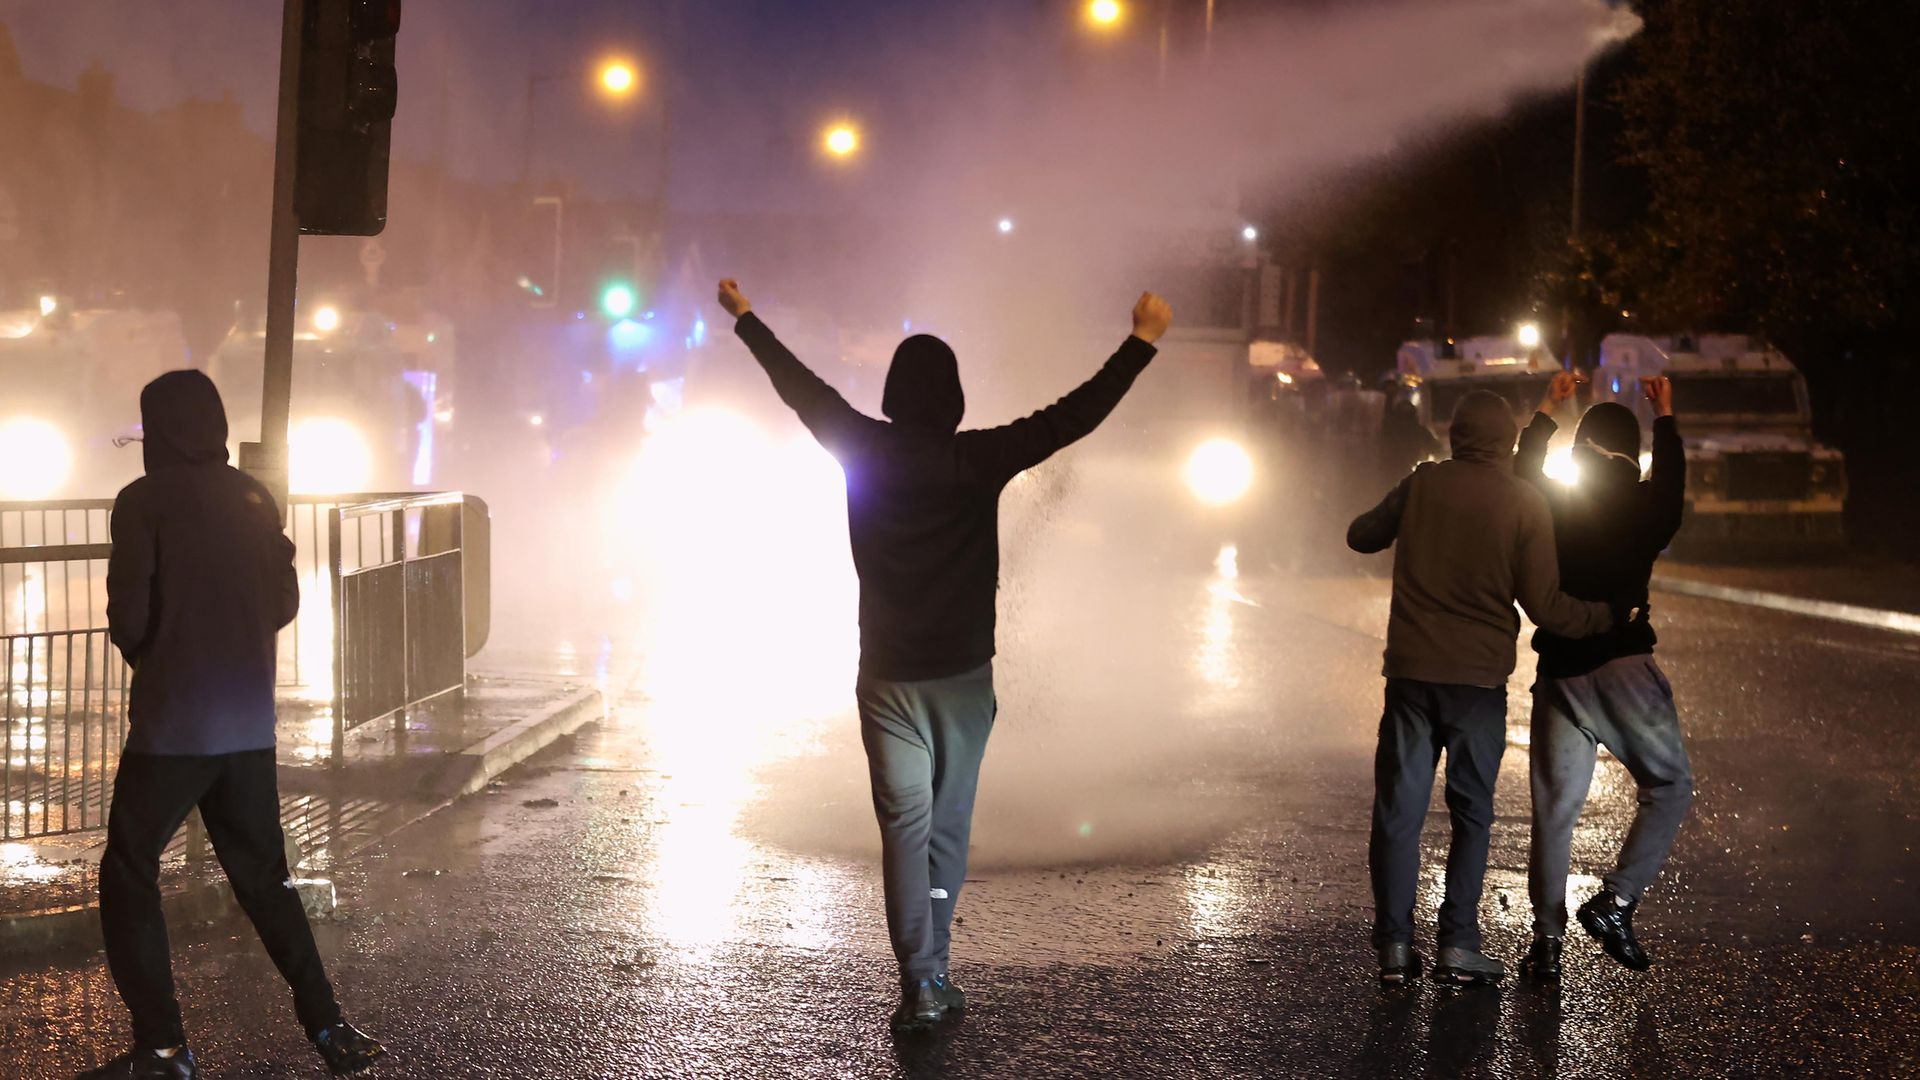 The PSNI use a water cannon on youths on the Springfield road, during further unrest in Belfast - Credit: PA